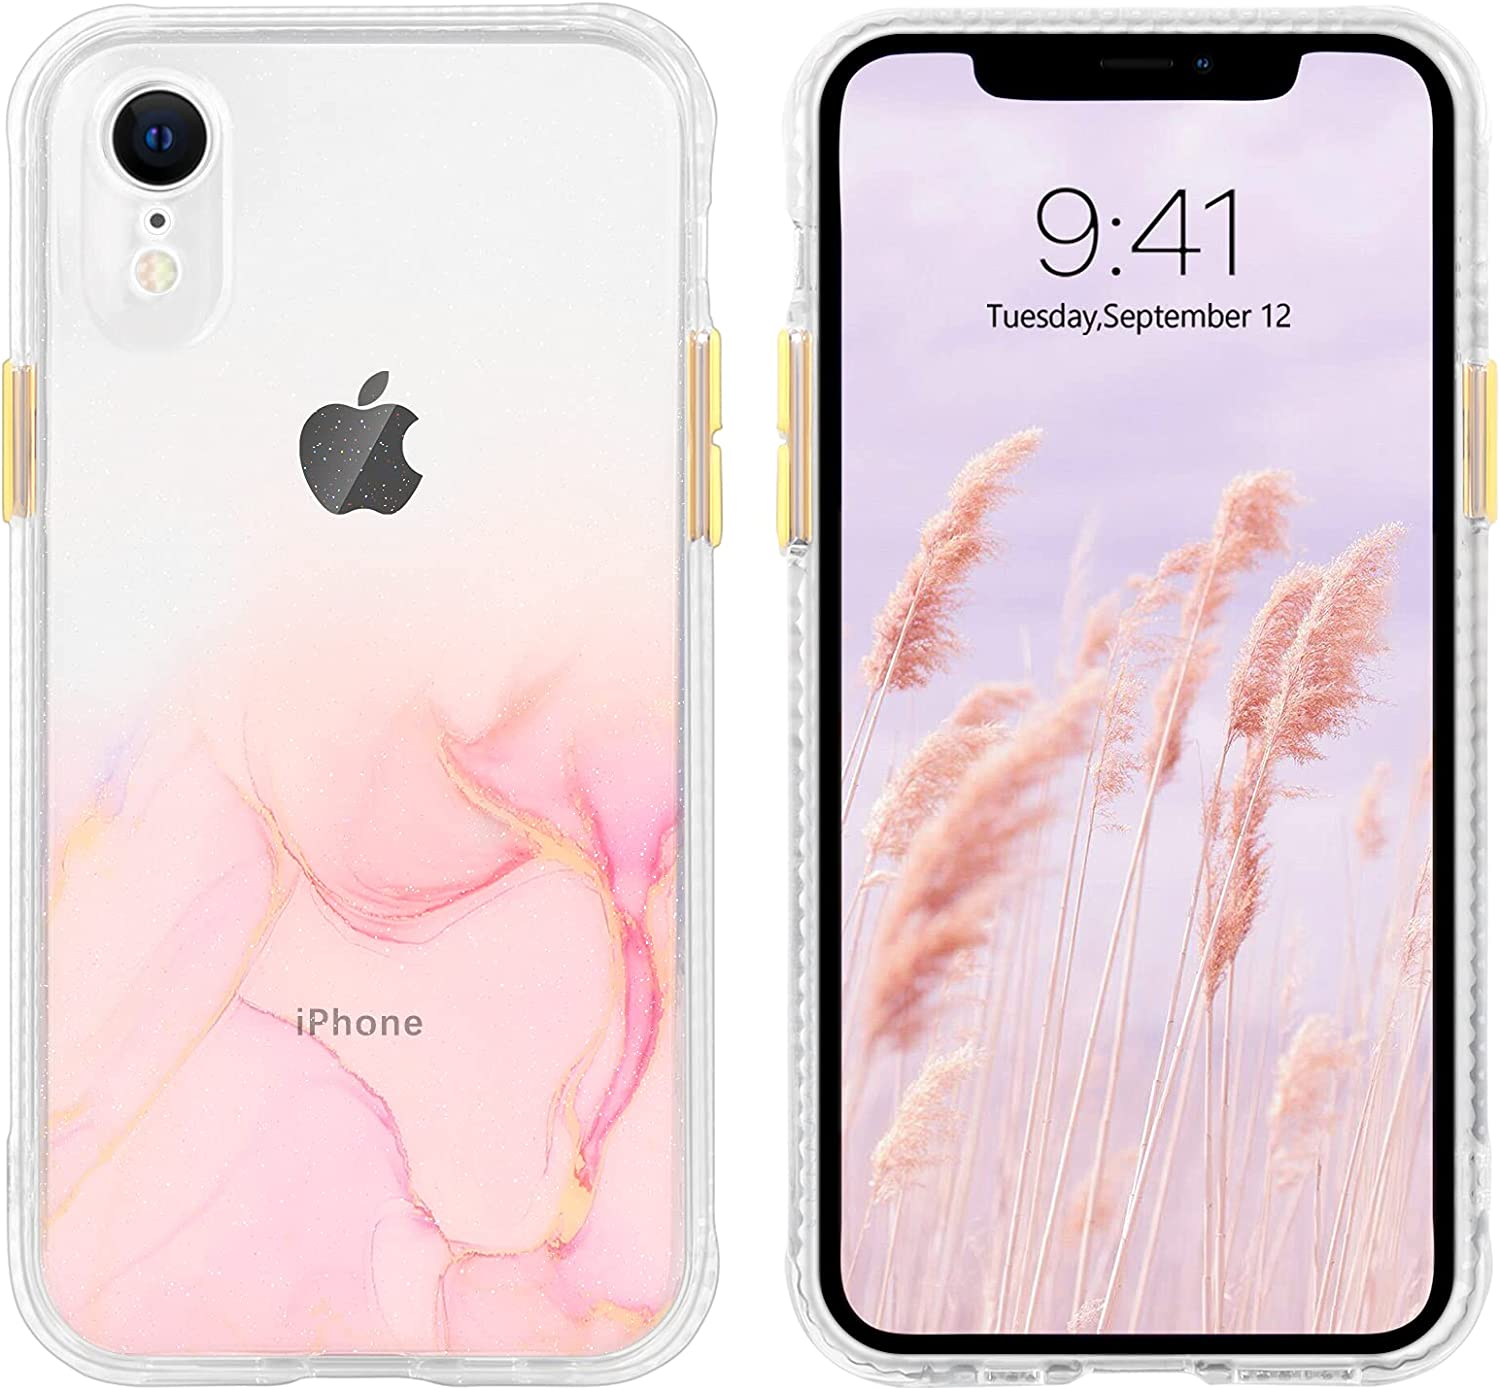 BENTOBEN iPhone XR Case, Phone Case iPhone XR, Slim Fit Shockproof Protective Hybrid Hard PC Soft TPU Bumper Drop Protection Non Slip Girls Women Boy Men iPhone XR Cover 2018, Clear/Pink Marble Design